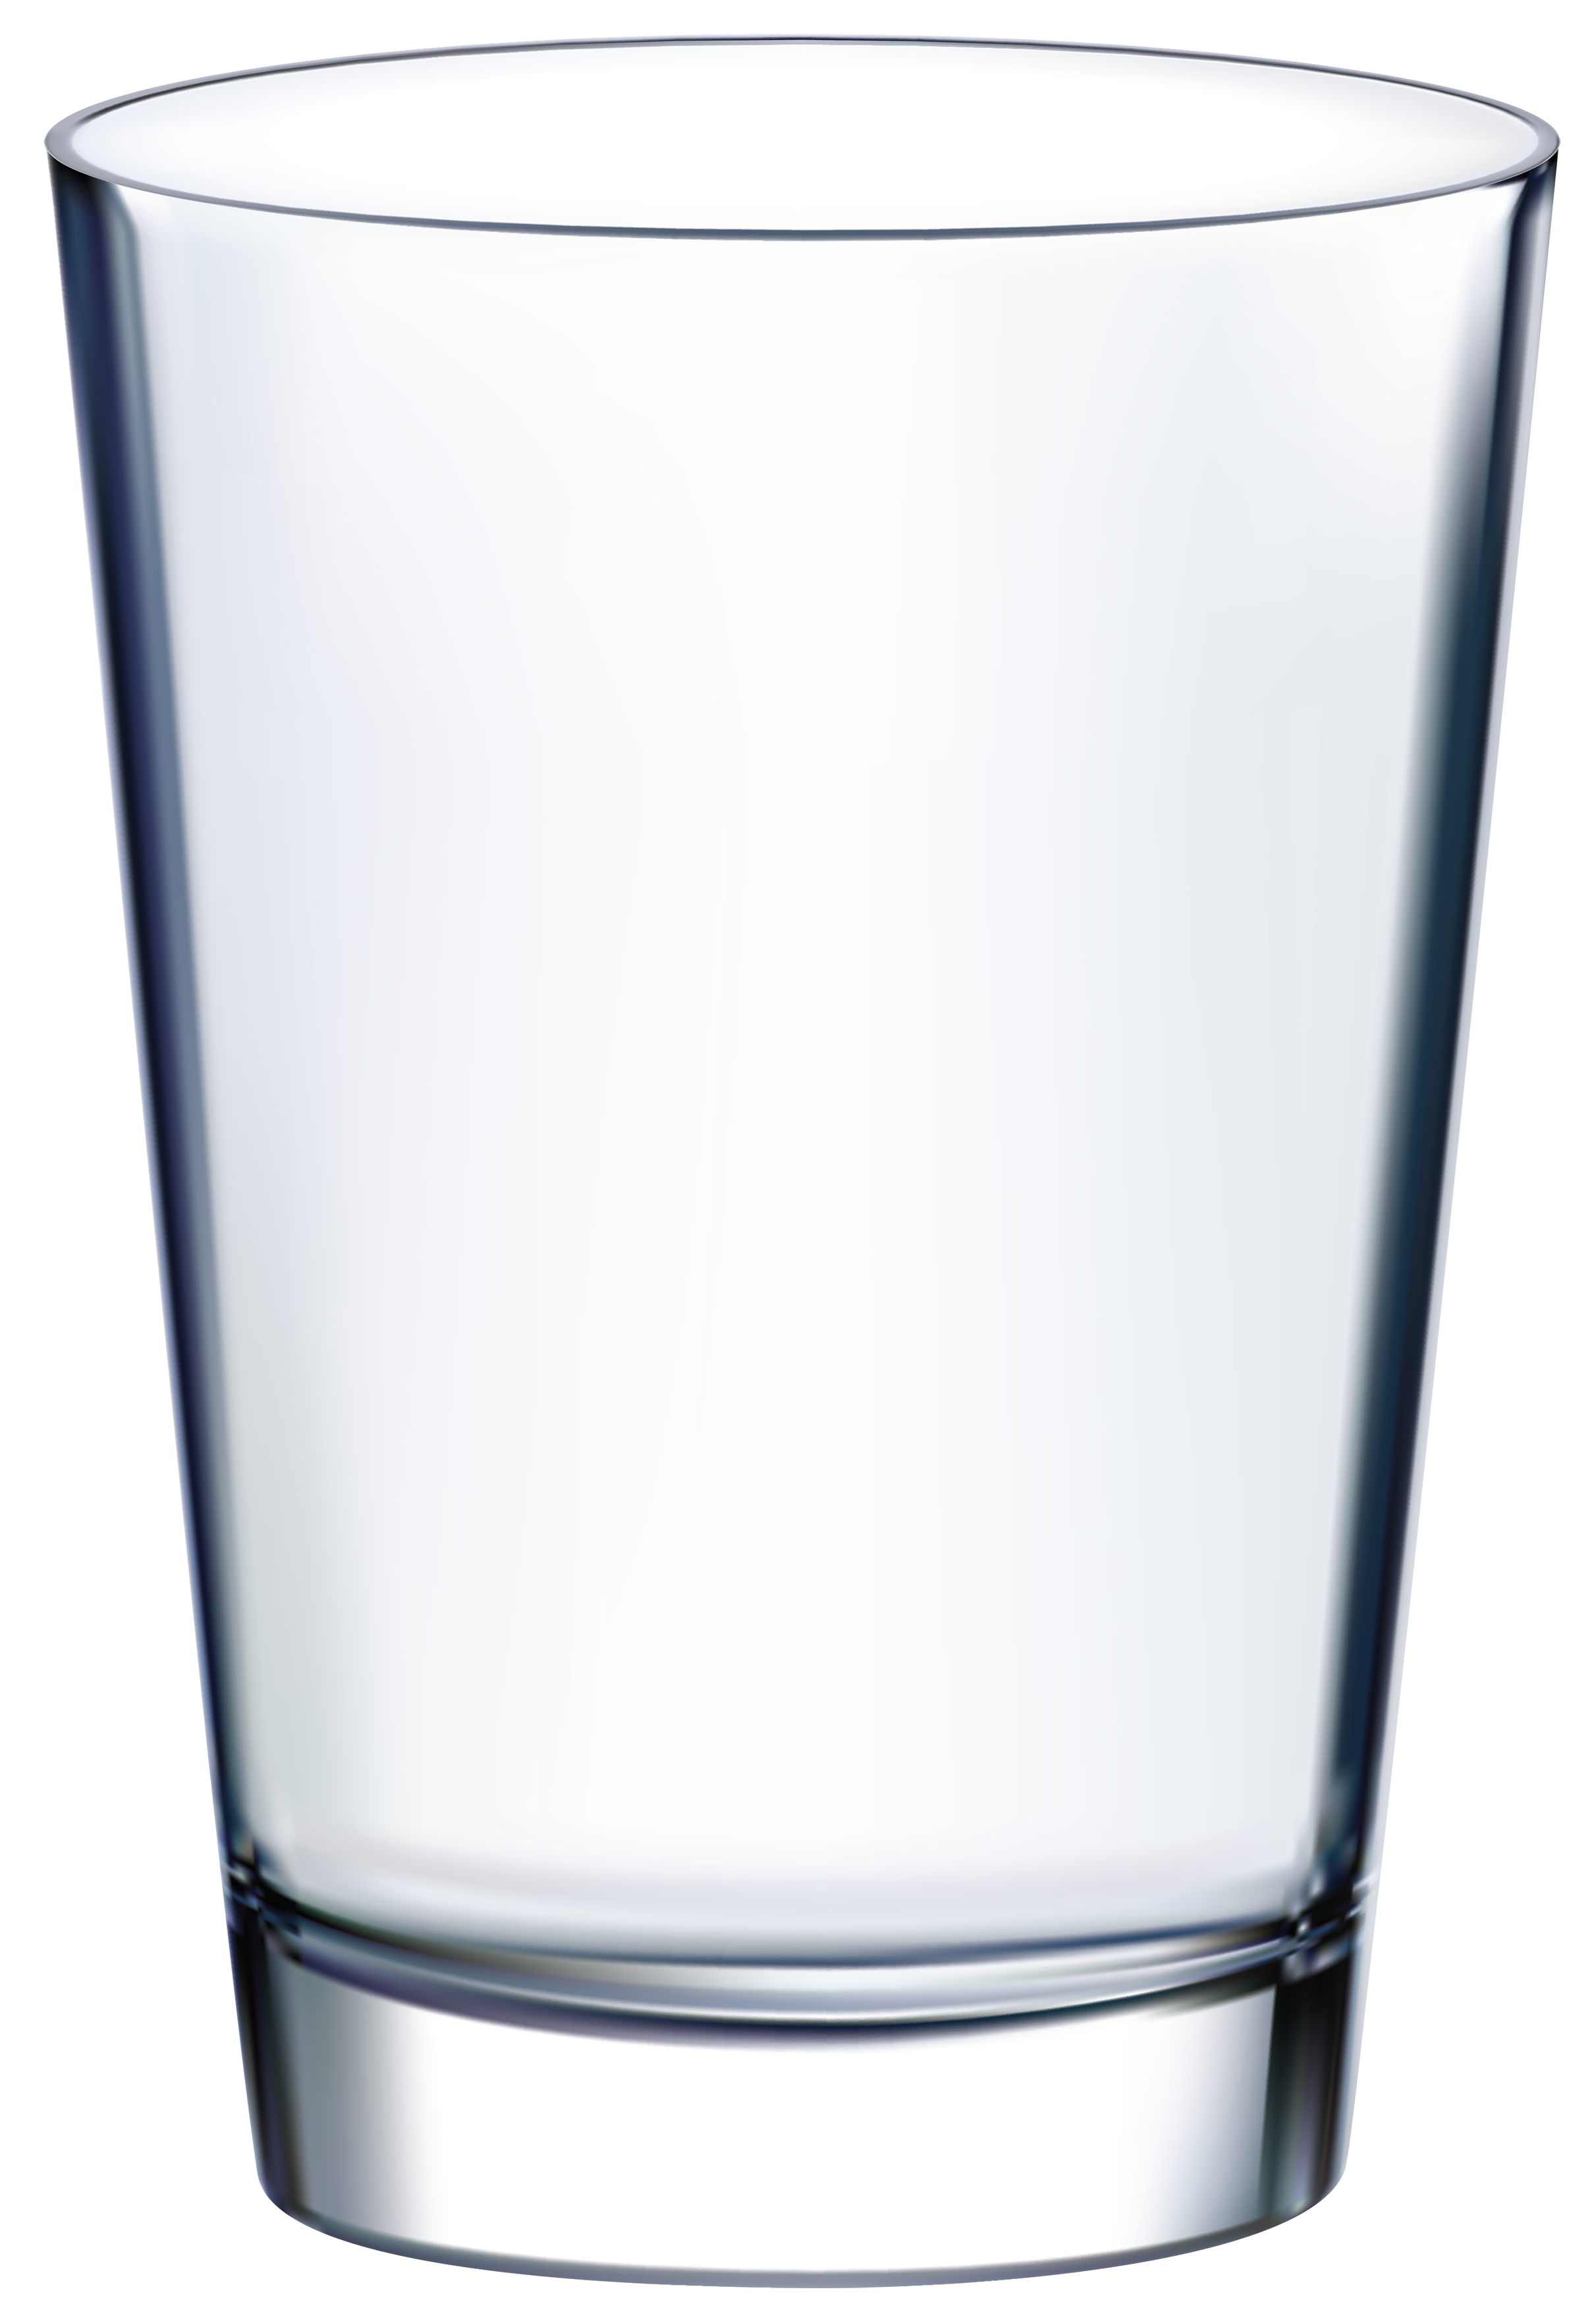 White candles in glass png hd. Clipart image best web